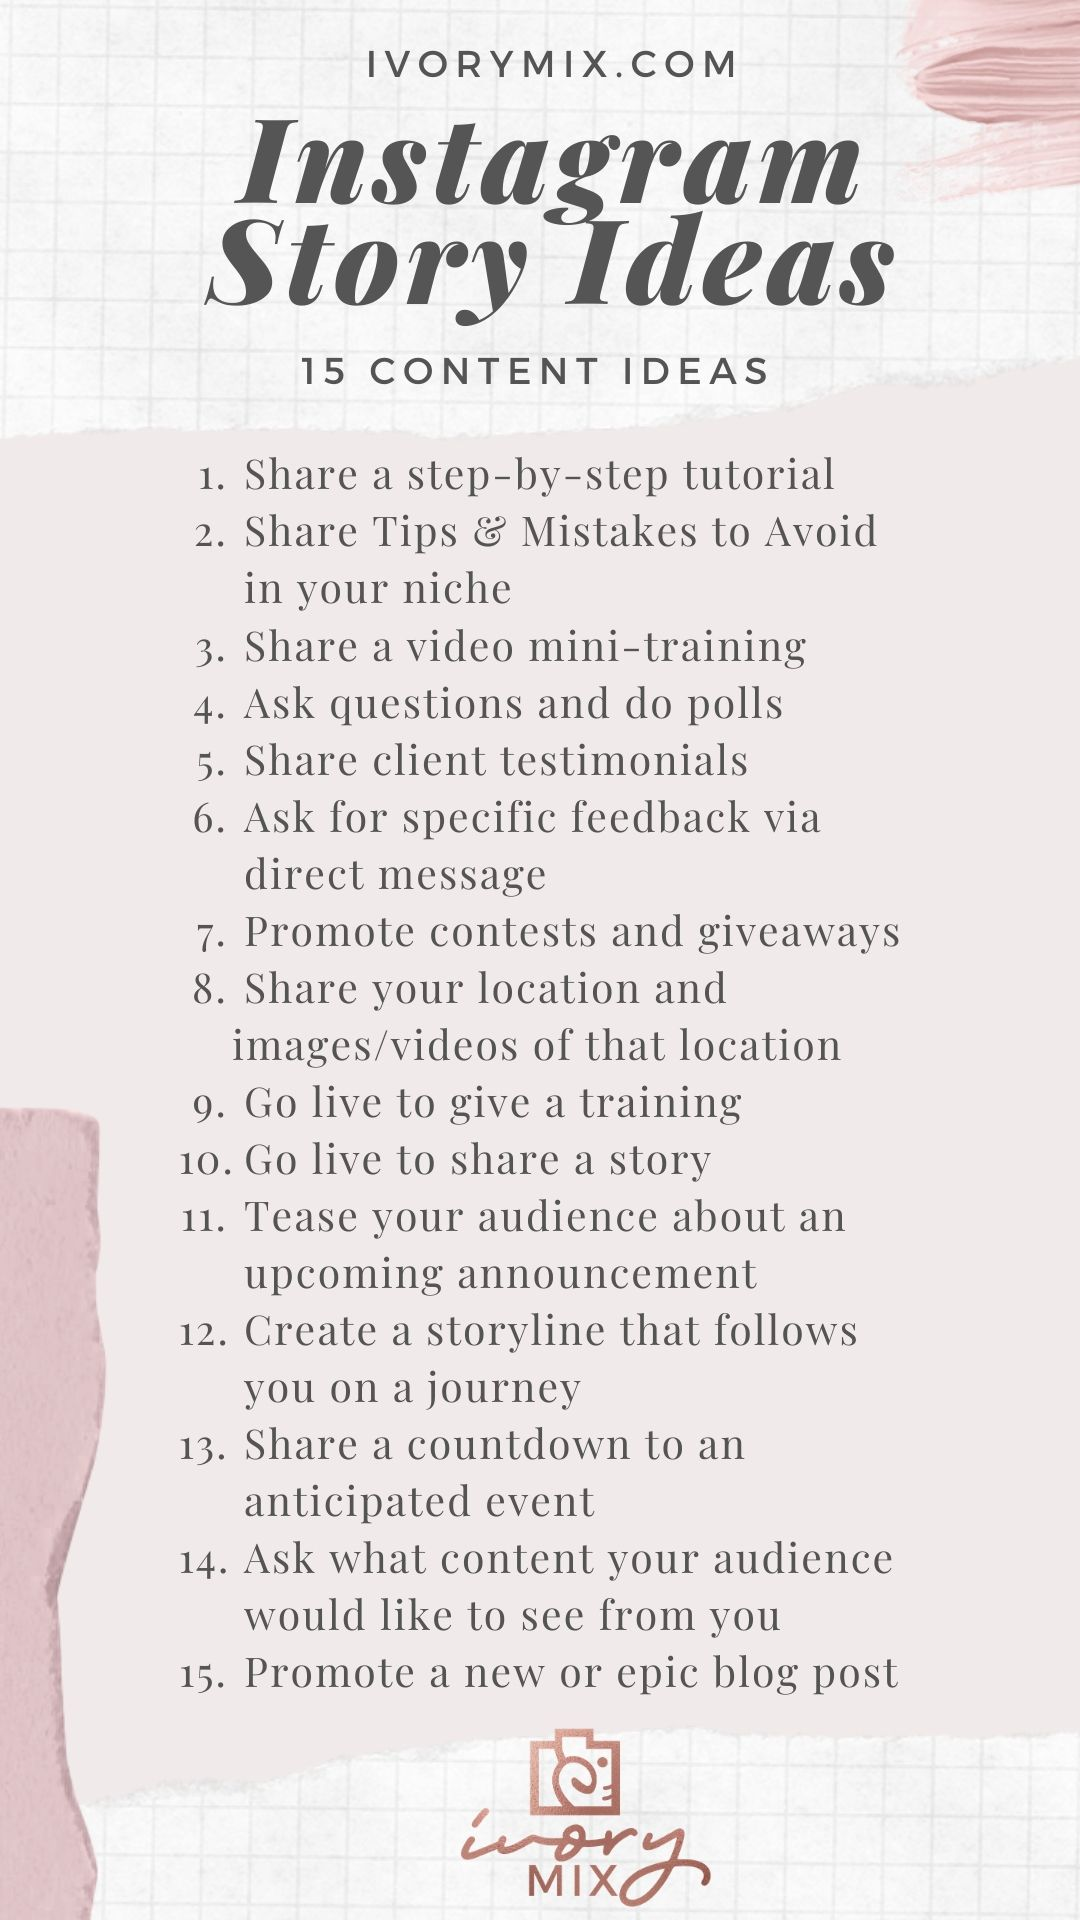 15 content ideas for Instagram Story